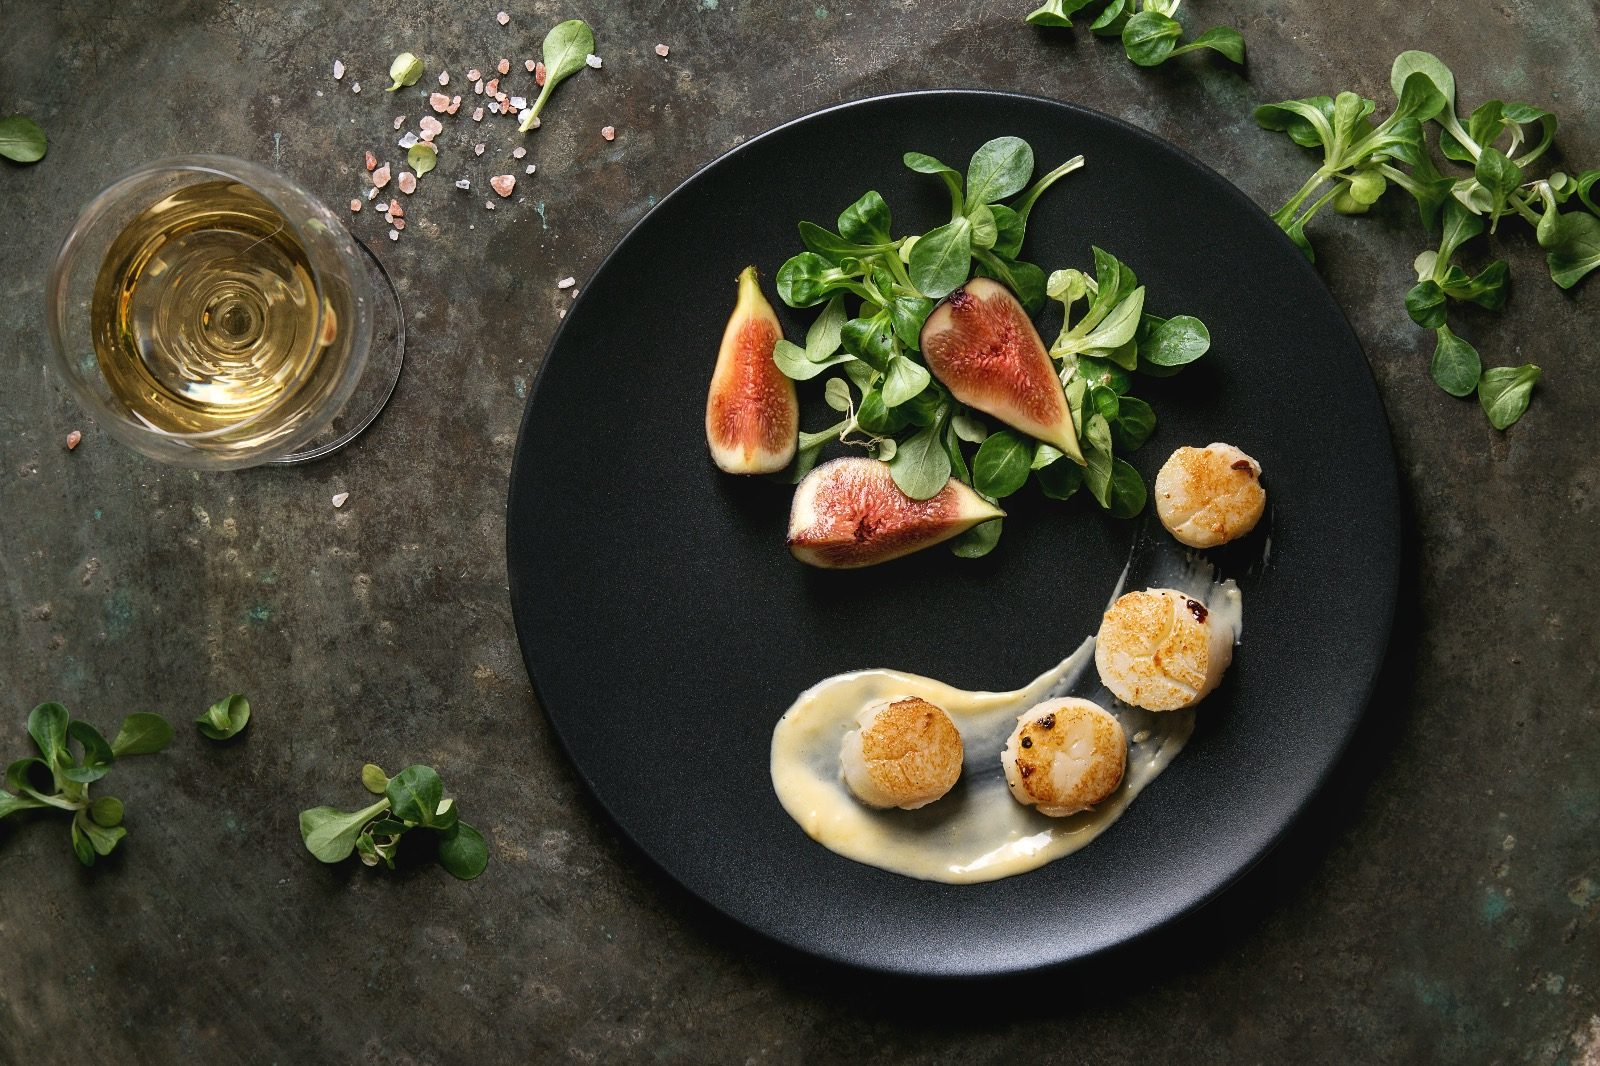 Quality Seafood To Pair With Something Light And Fresh - Sea Scallops - Beck & Bulow